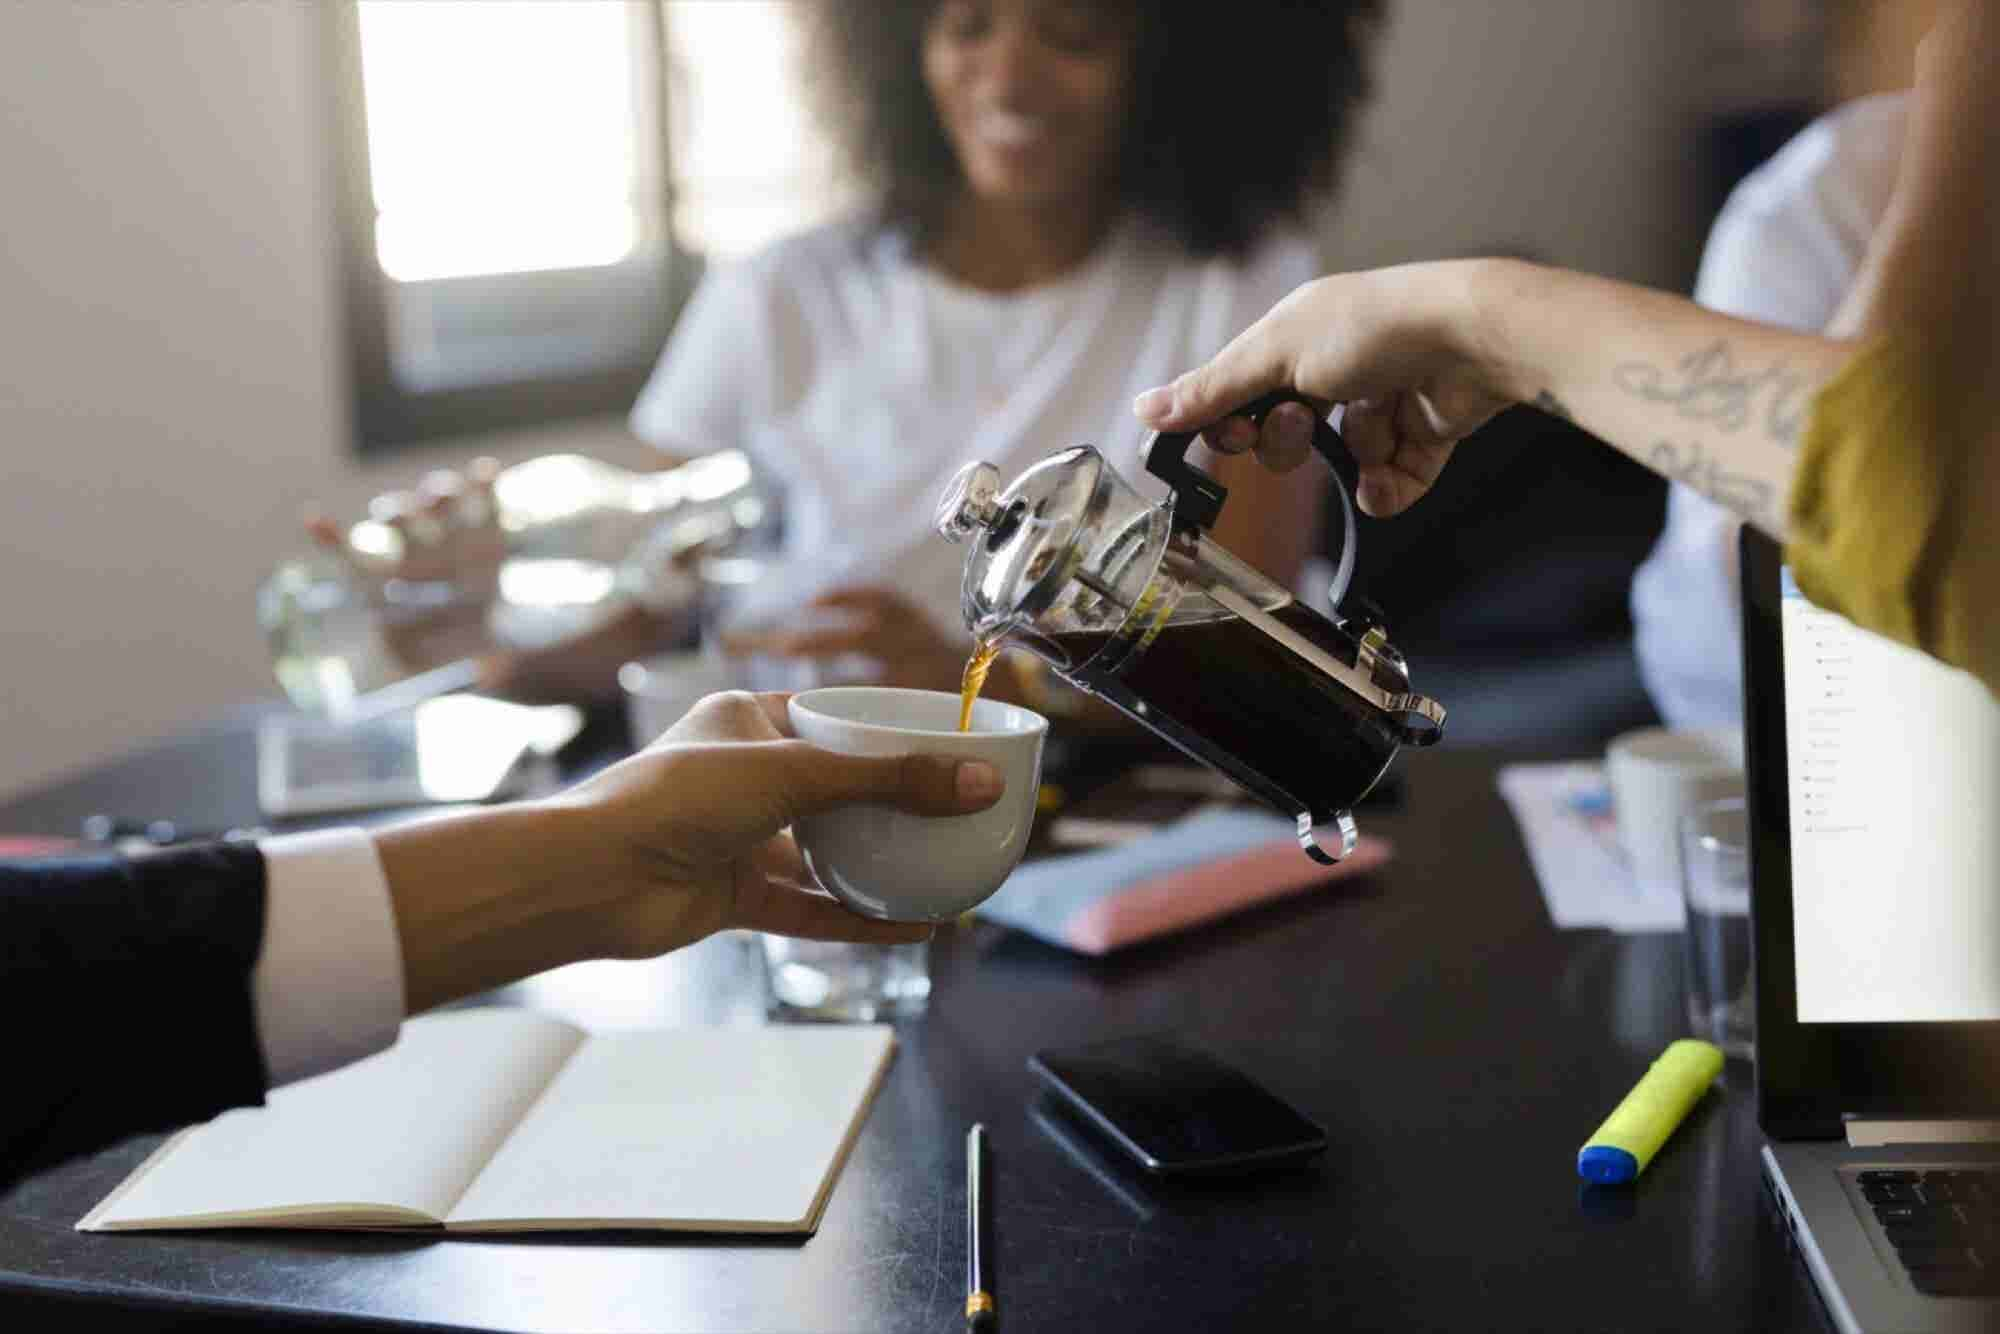 Don't Be Like the Woman Who Poisoned the Office Coffee Pot -- Follow These 10 Steps to Conquer Work Stress